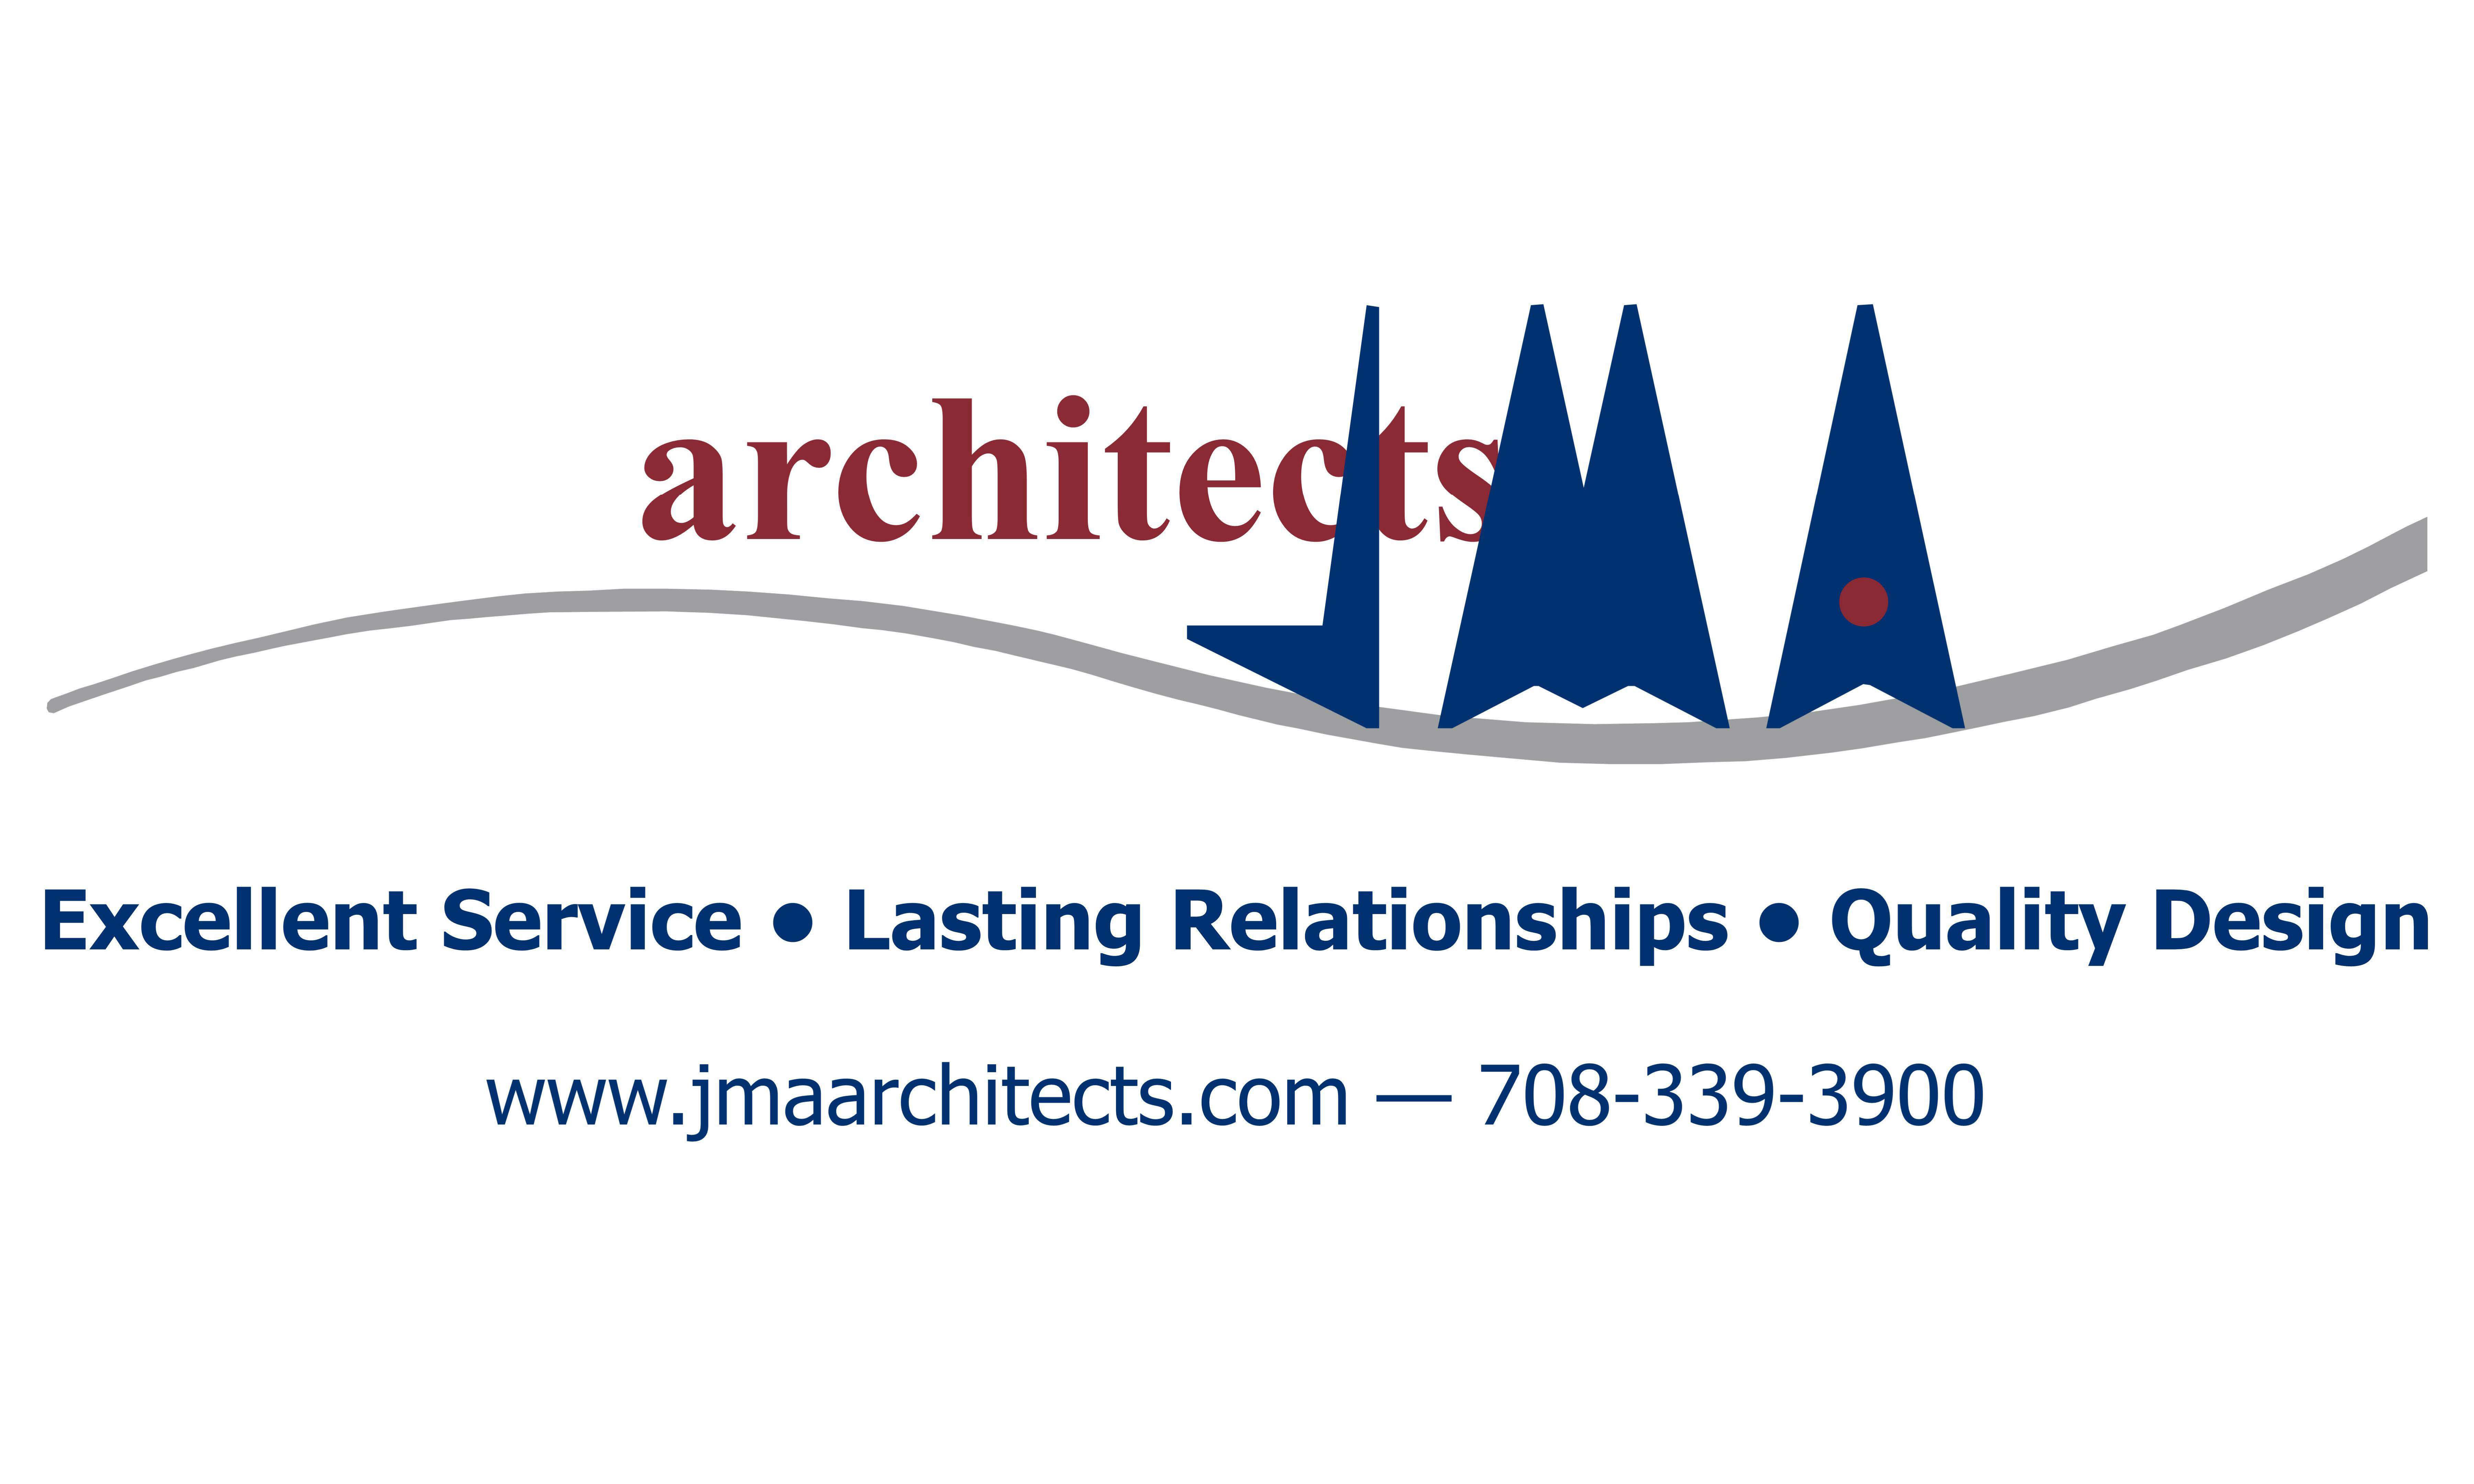 JMA Architects, a sponsor of the South Holland Business Association in South Holland IL